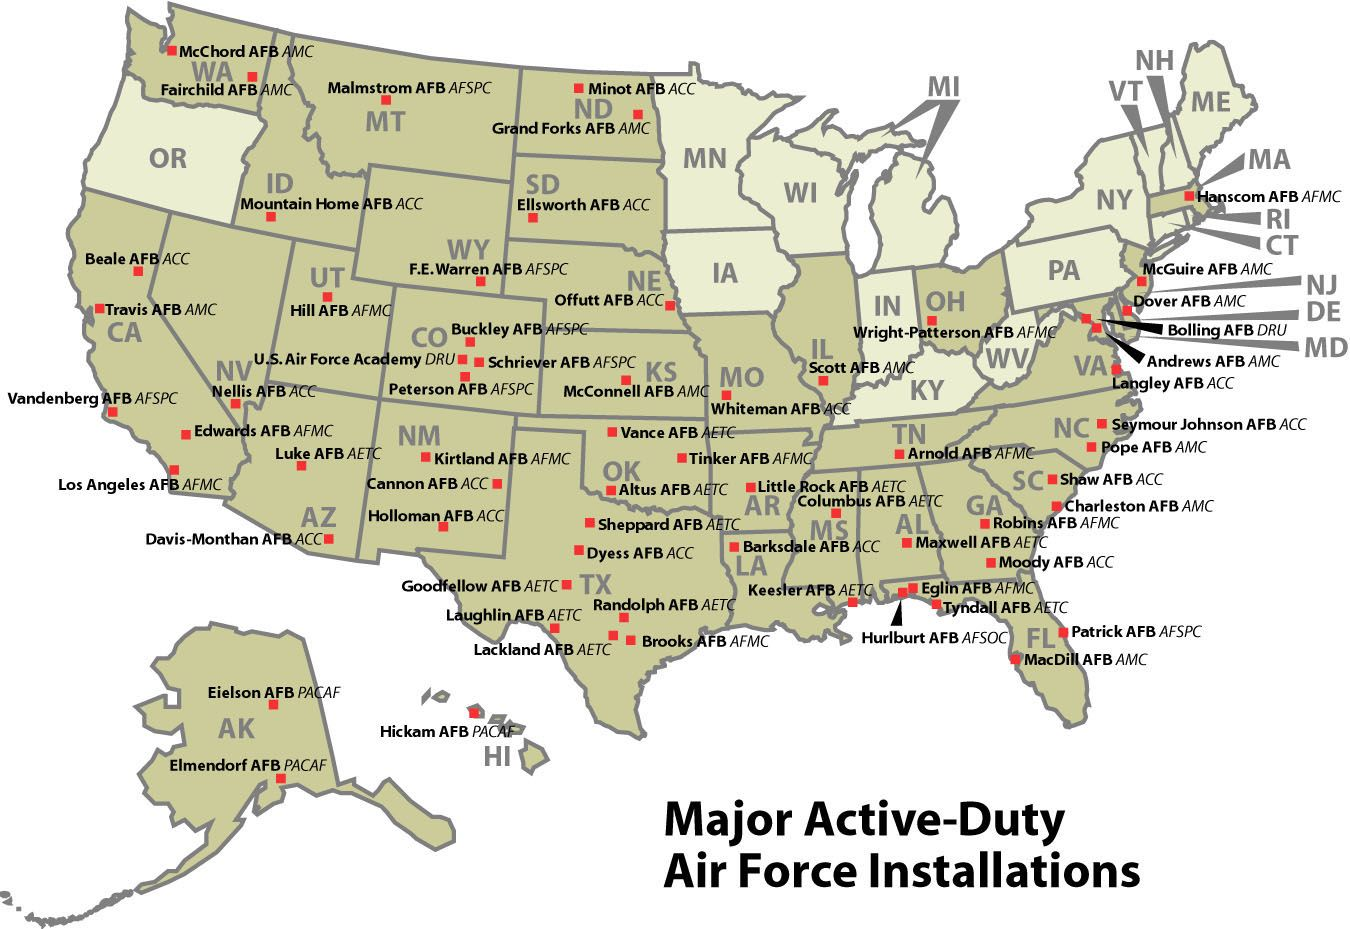 map of air force bases in united states Exactly what I need for